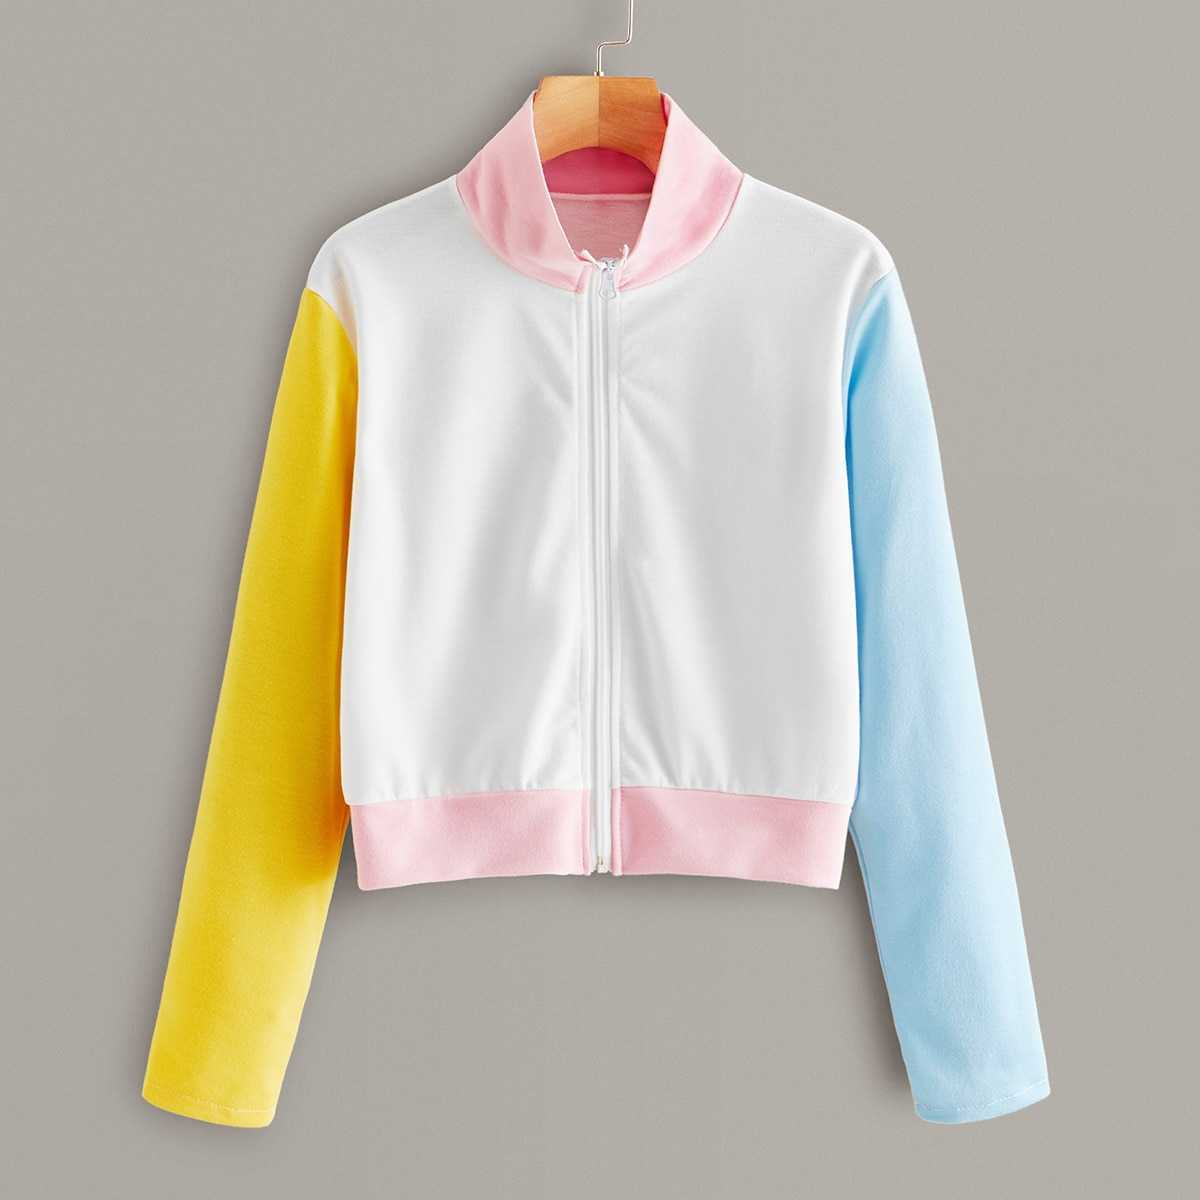 Color-block Stand Collar Zip-up Sweatshirt in White by ROMWE on GOOFASH